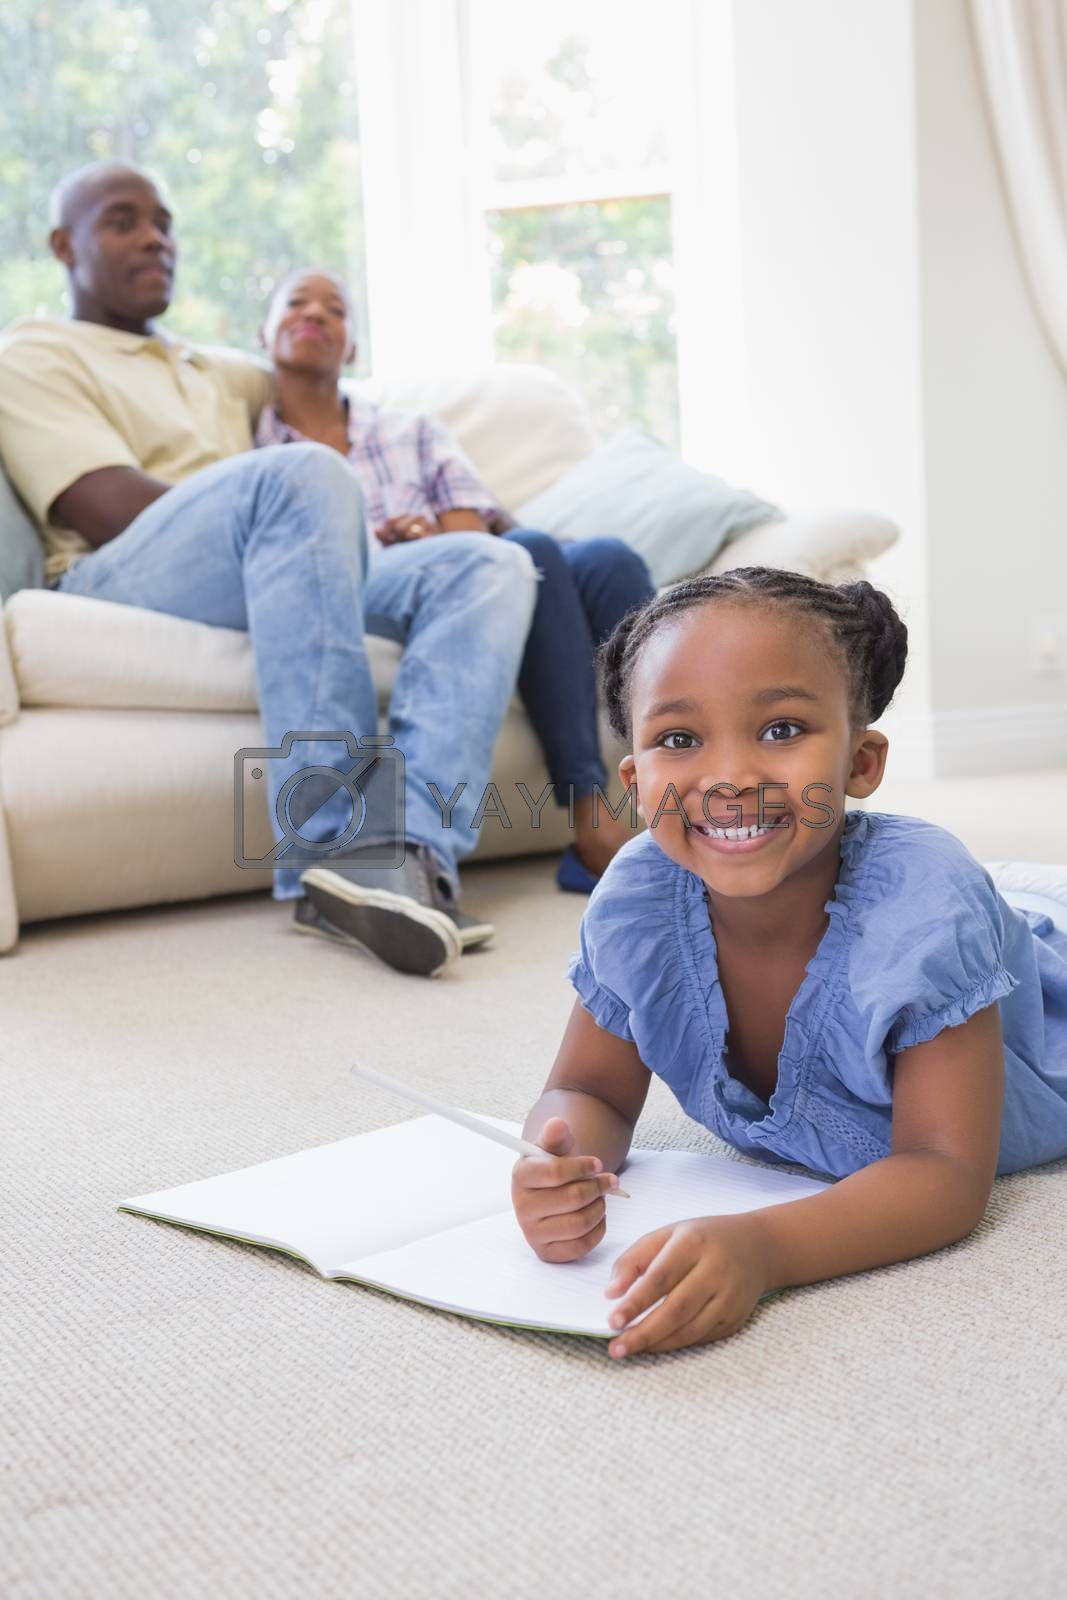 Royalty free image of Portrait happy smiling little girl writting on notepad  by Wavebreakmedia